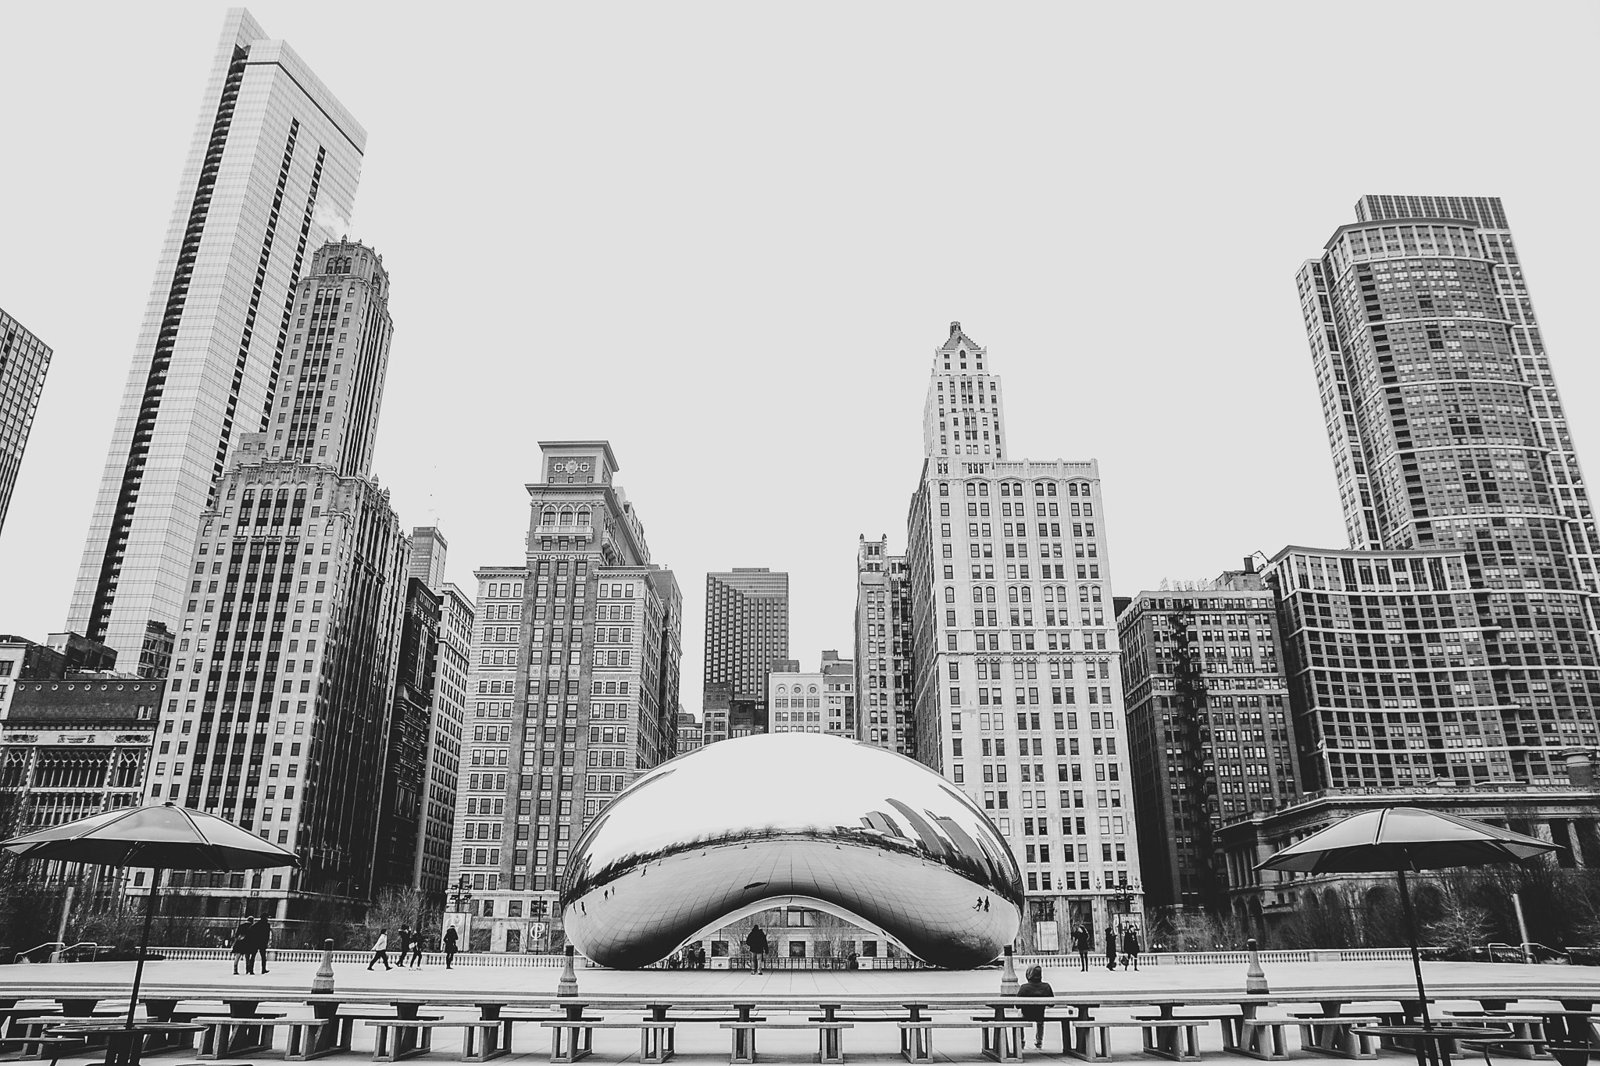 Chicago cityscape with the bean statue